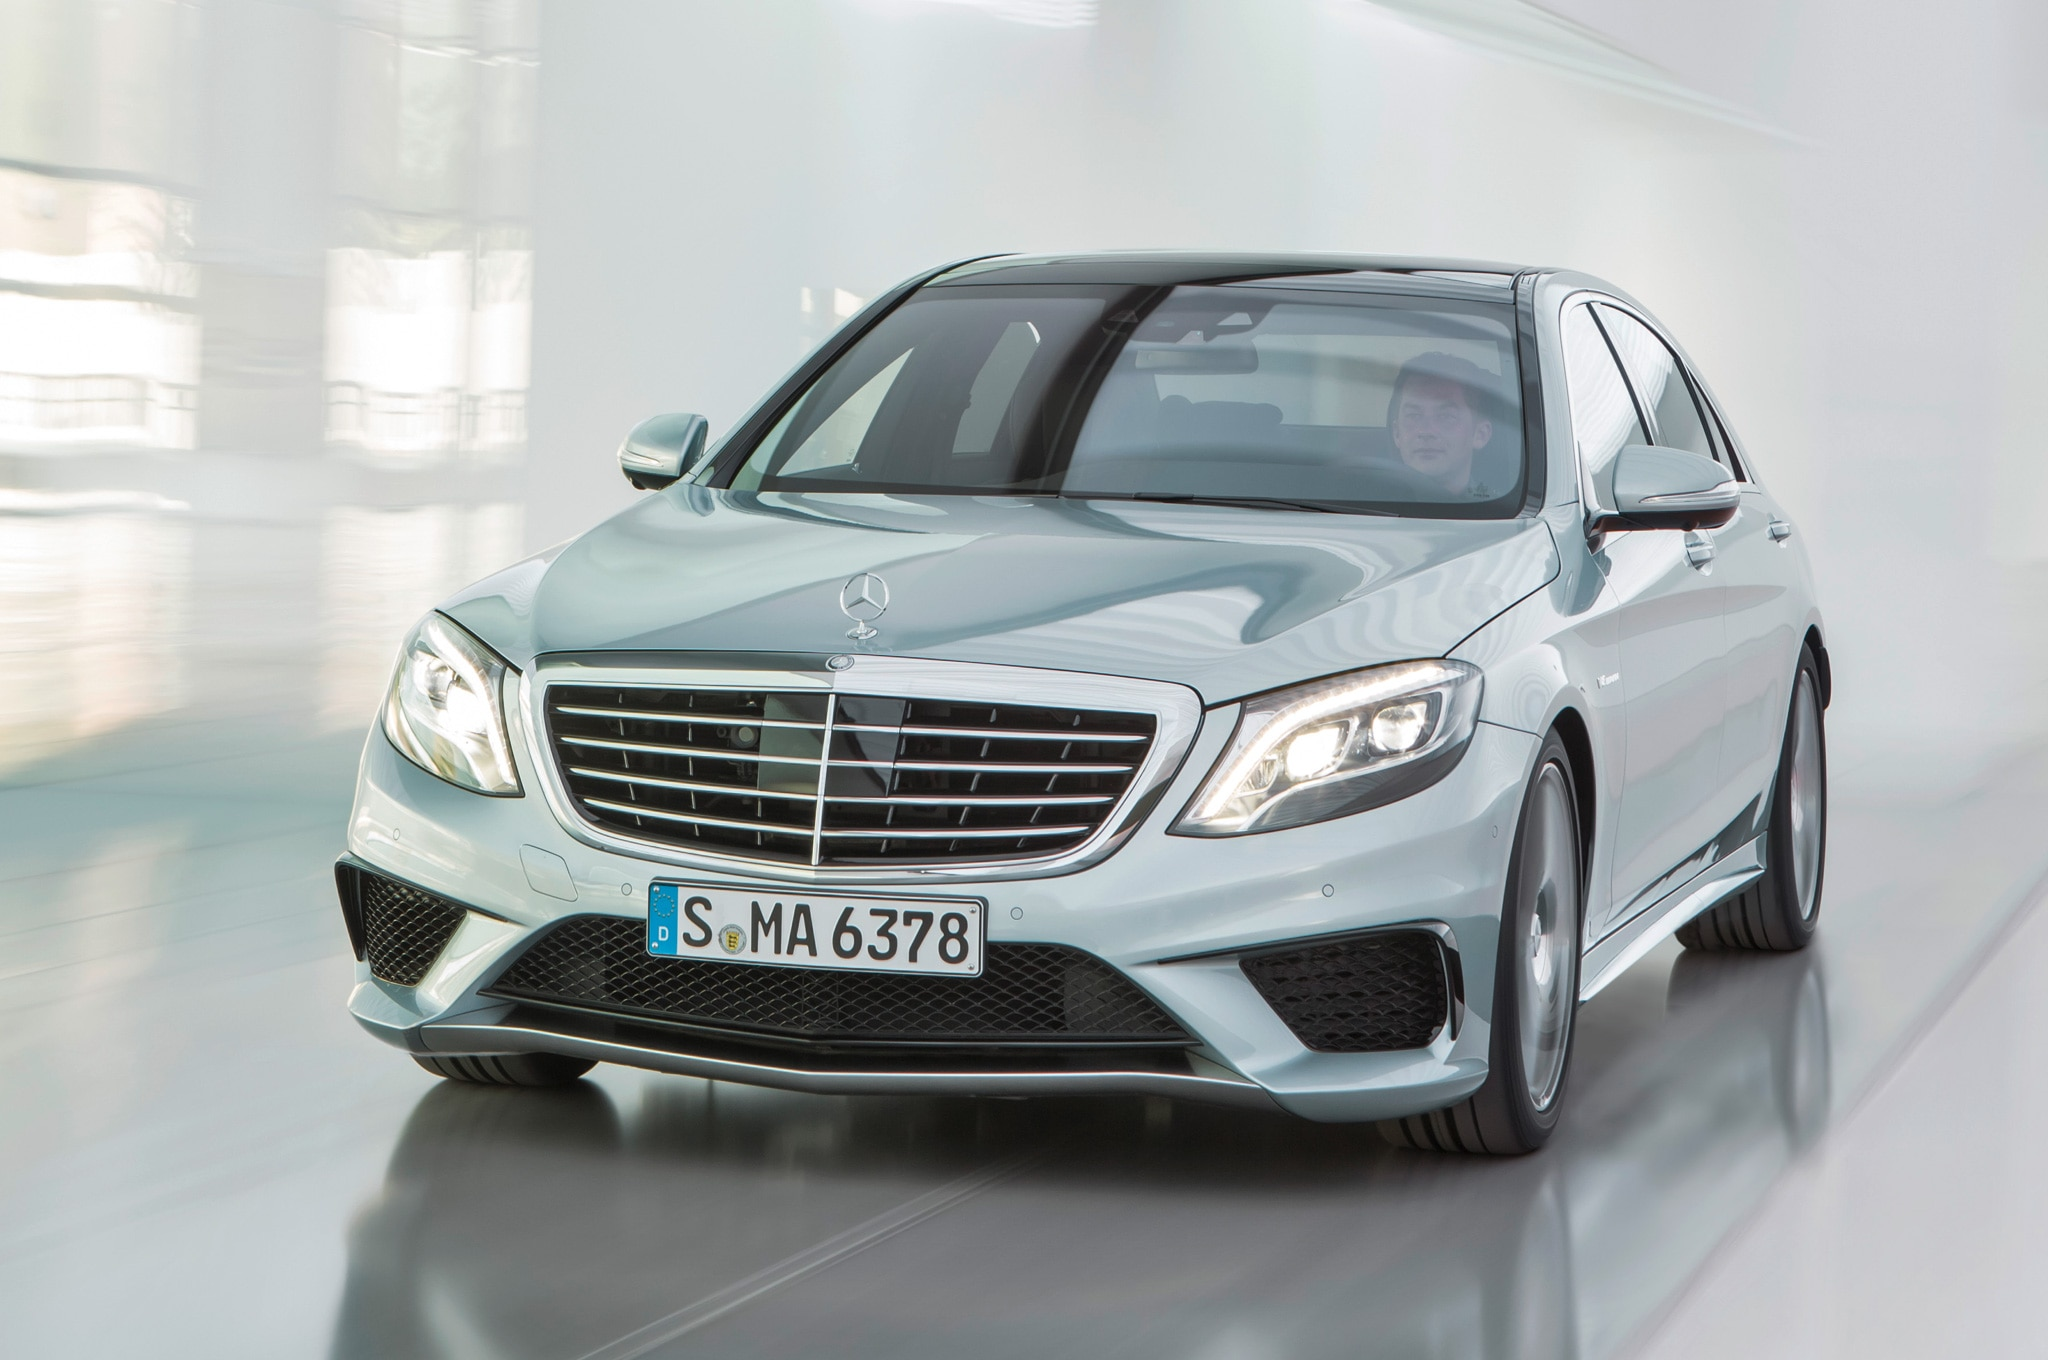 2014 Mercedes Benz S63 AMG 4Matic Front View1